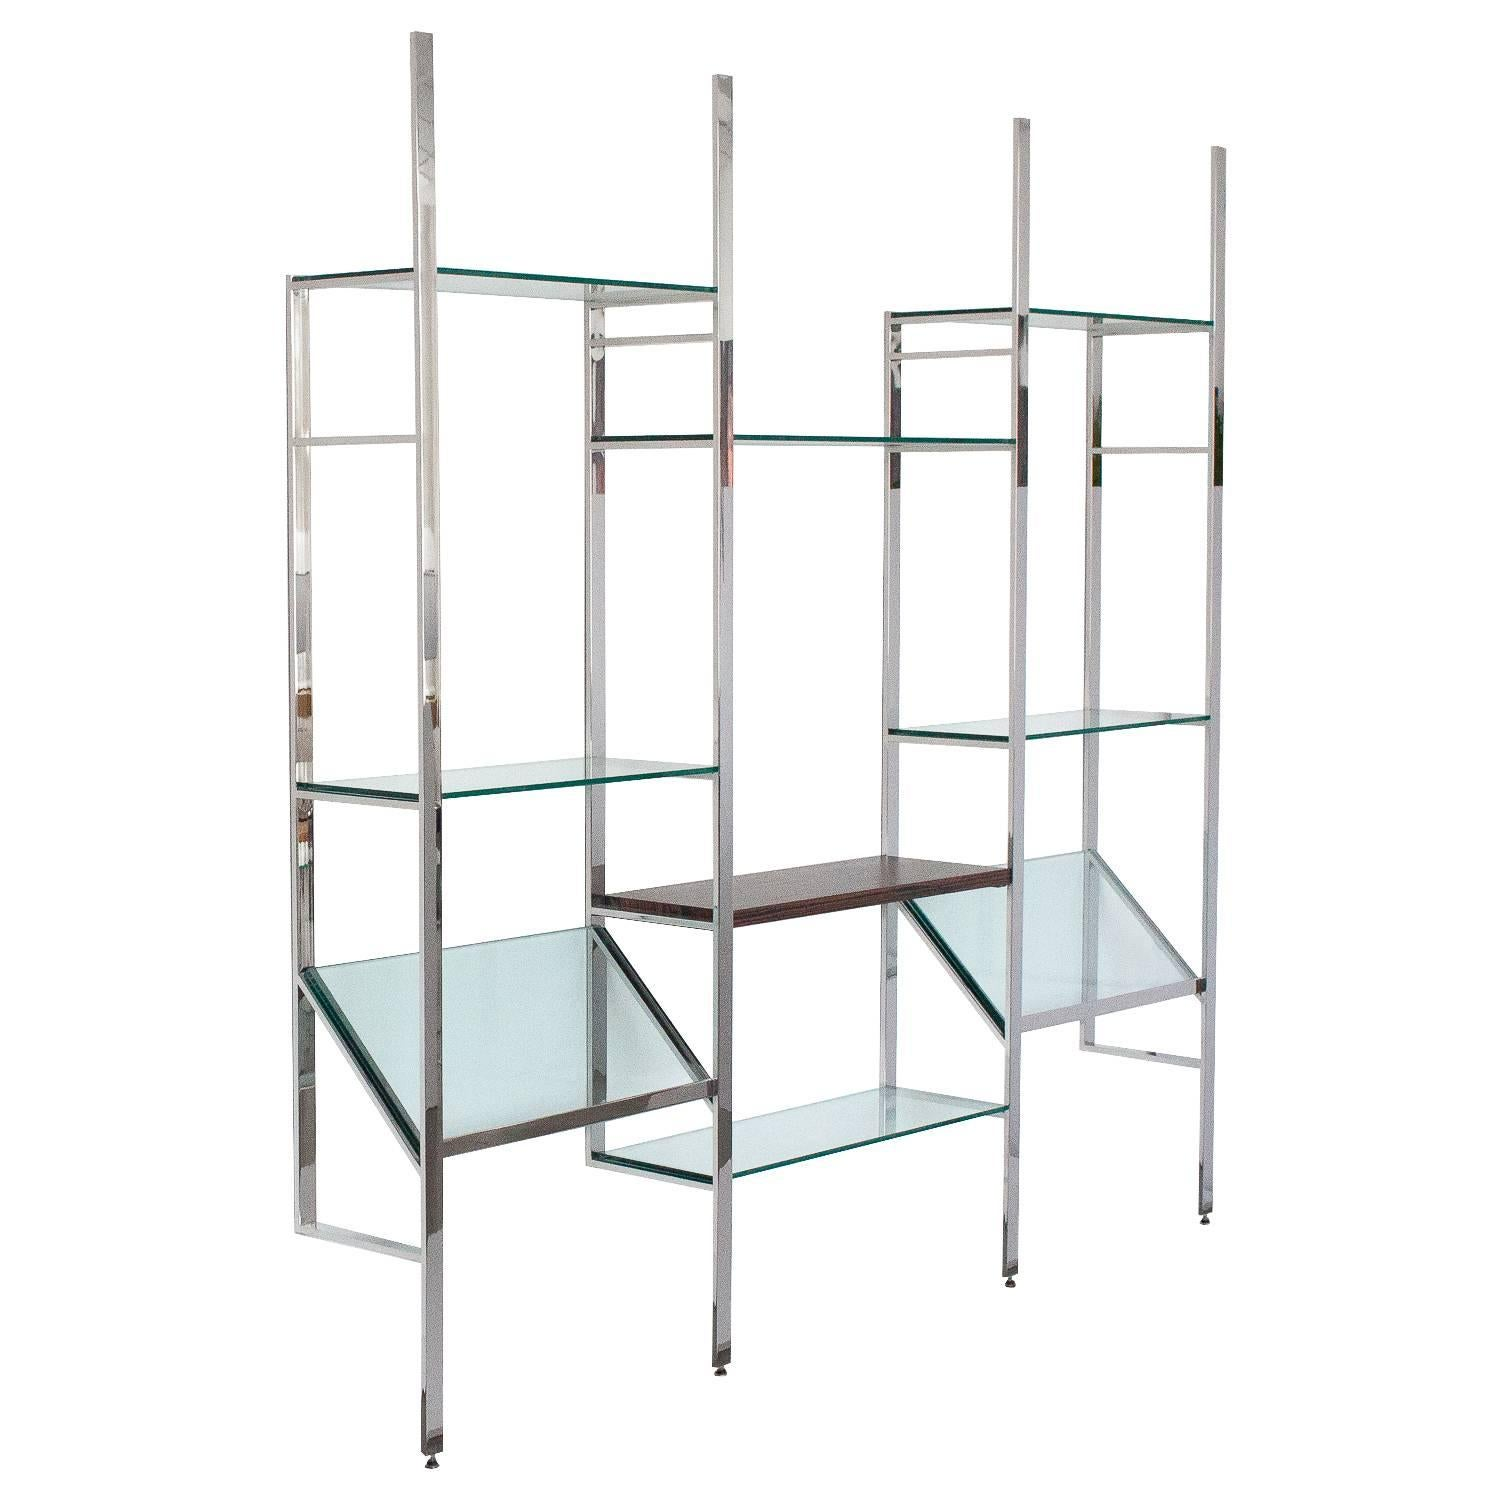 Milo baughman chrome and glass wall mounted shelving system for milo baughman chrome and glass wall mounted shelving system for sale at 1stdibs amipublicfo Gallery